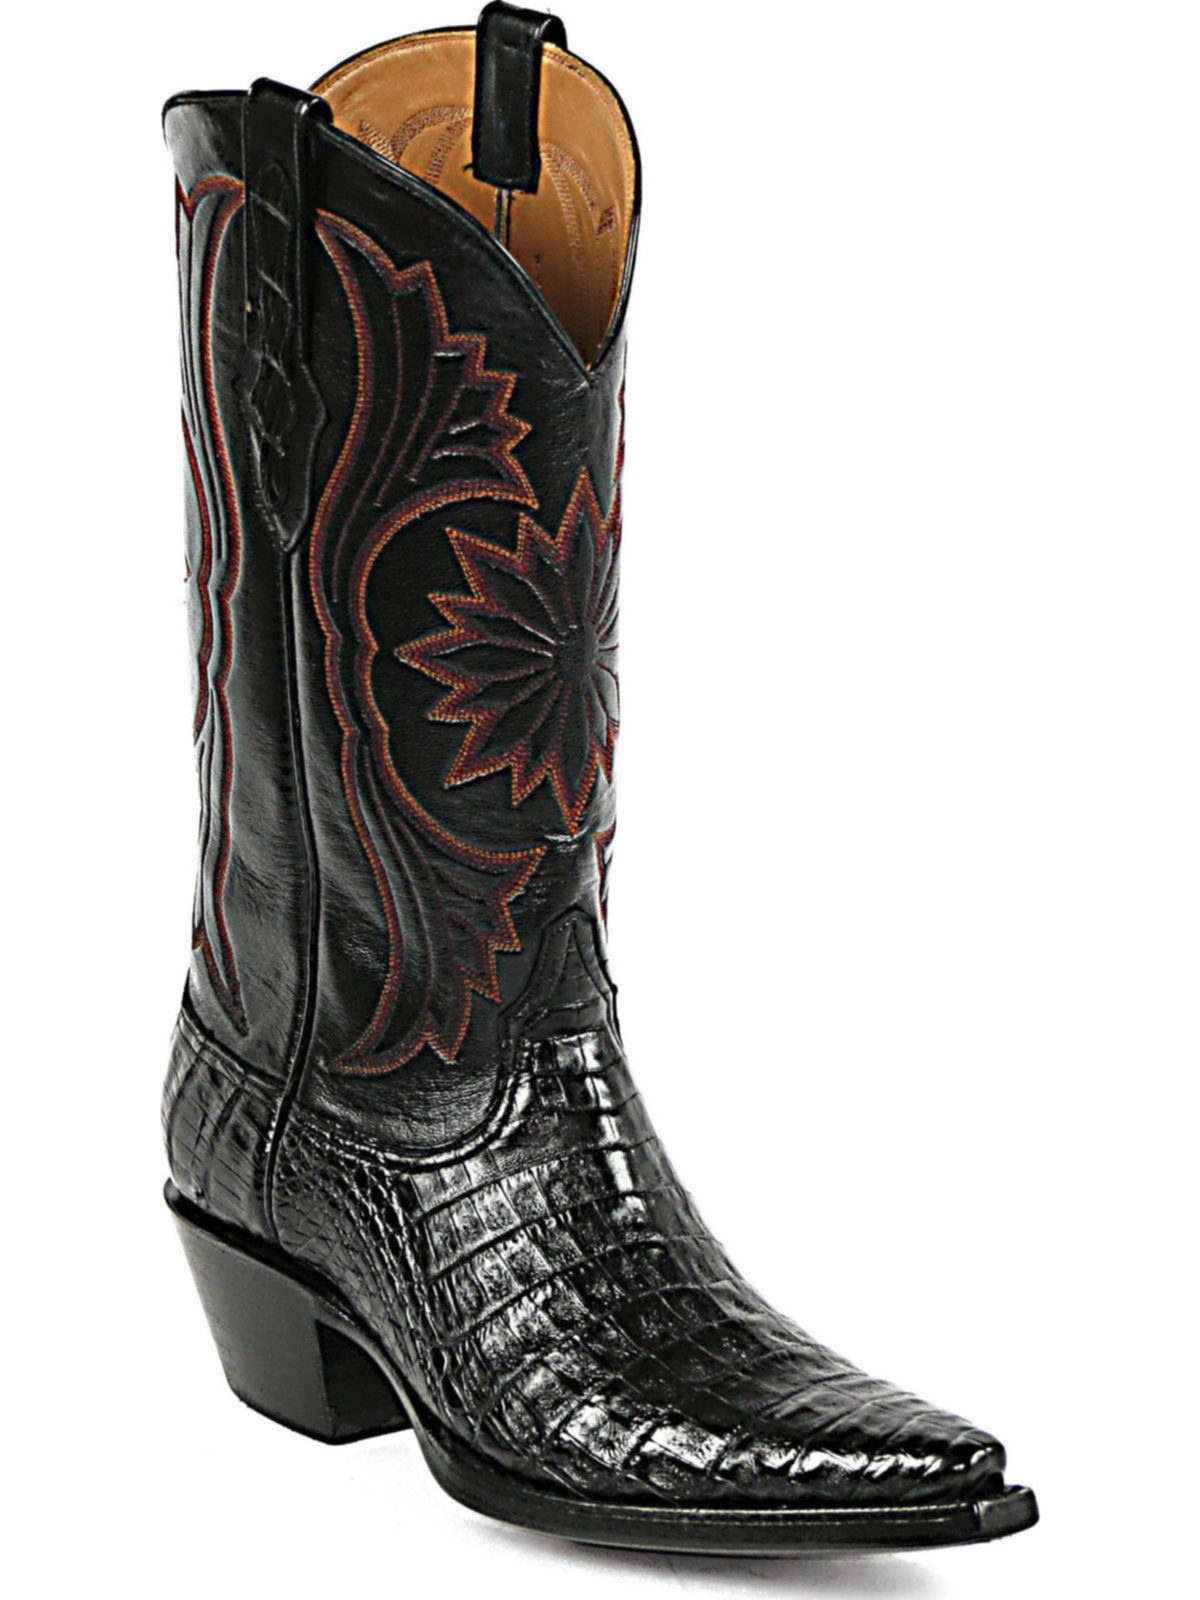 Bootamerica Black Jack Boots Stitch M 344 Caiman Belly